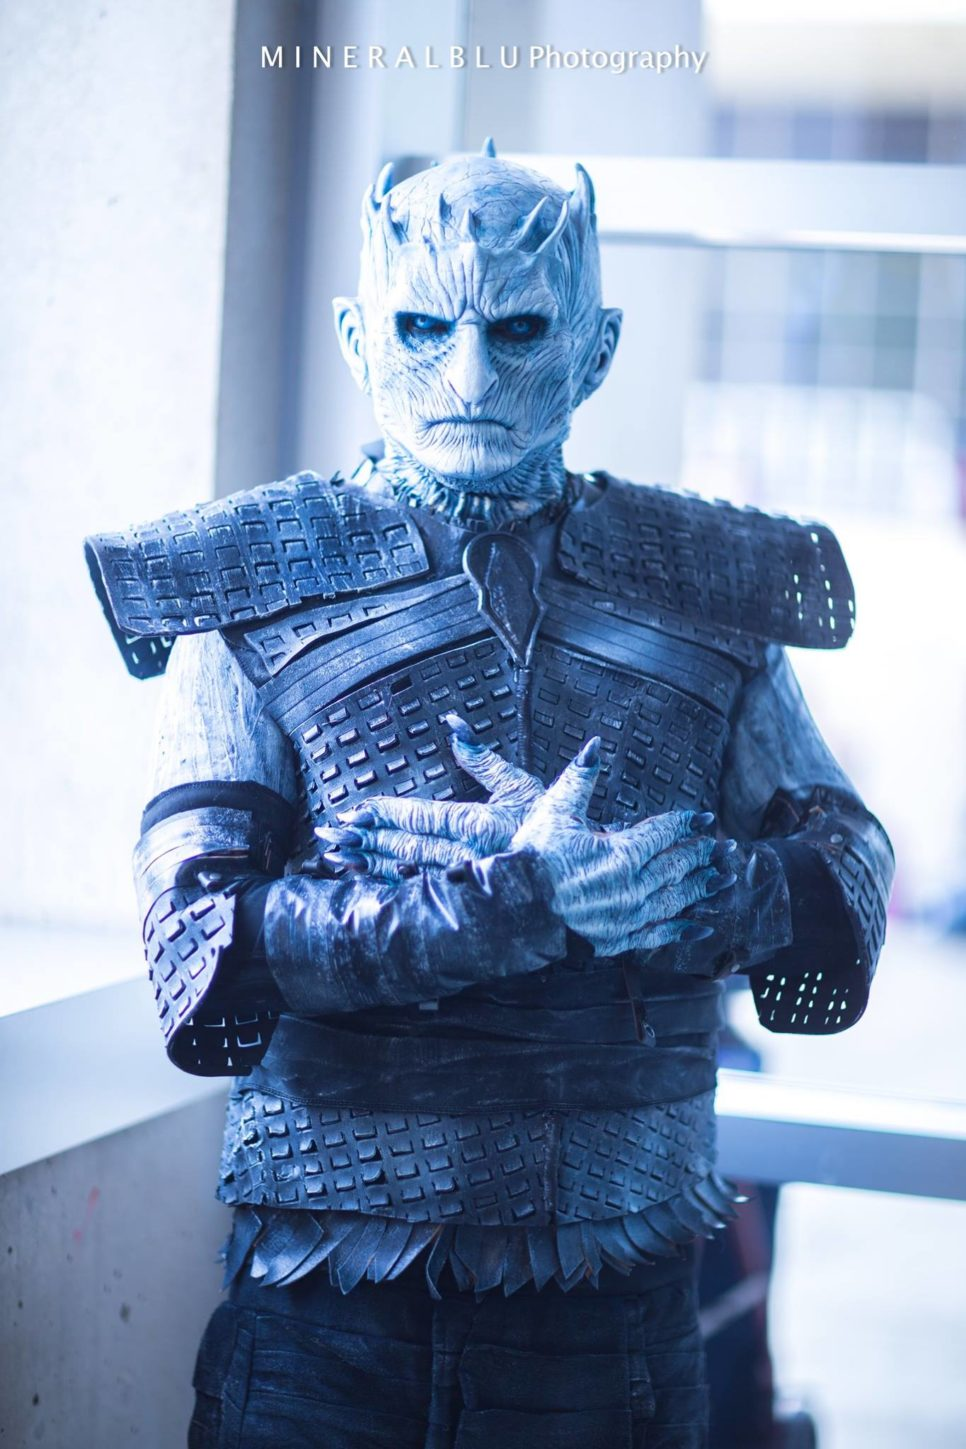 Night King z Gry o Tron - czas na cosplay!